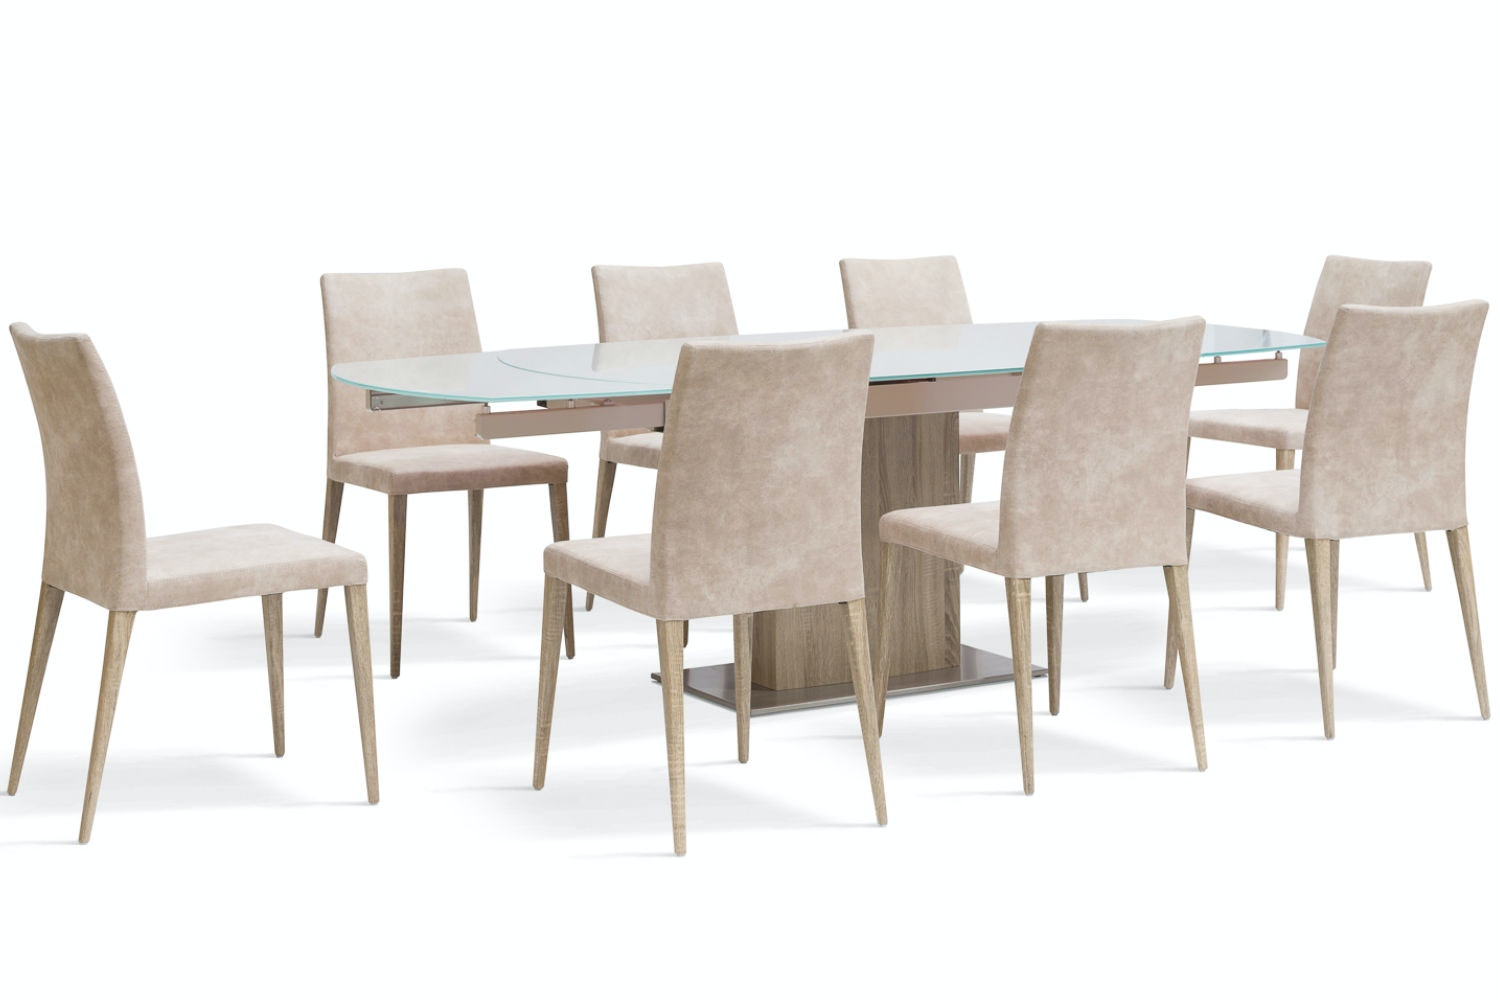 Lucci Light 9 Piece Dining Set | Low Calvino Dining Chairs ...